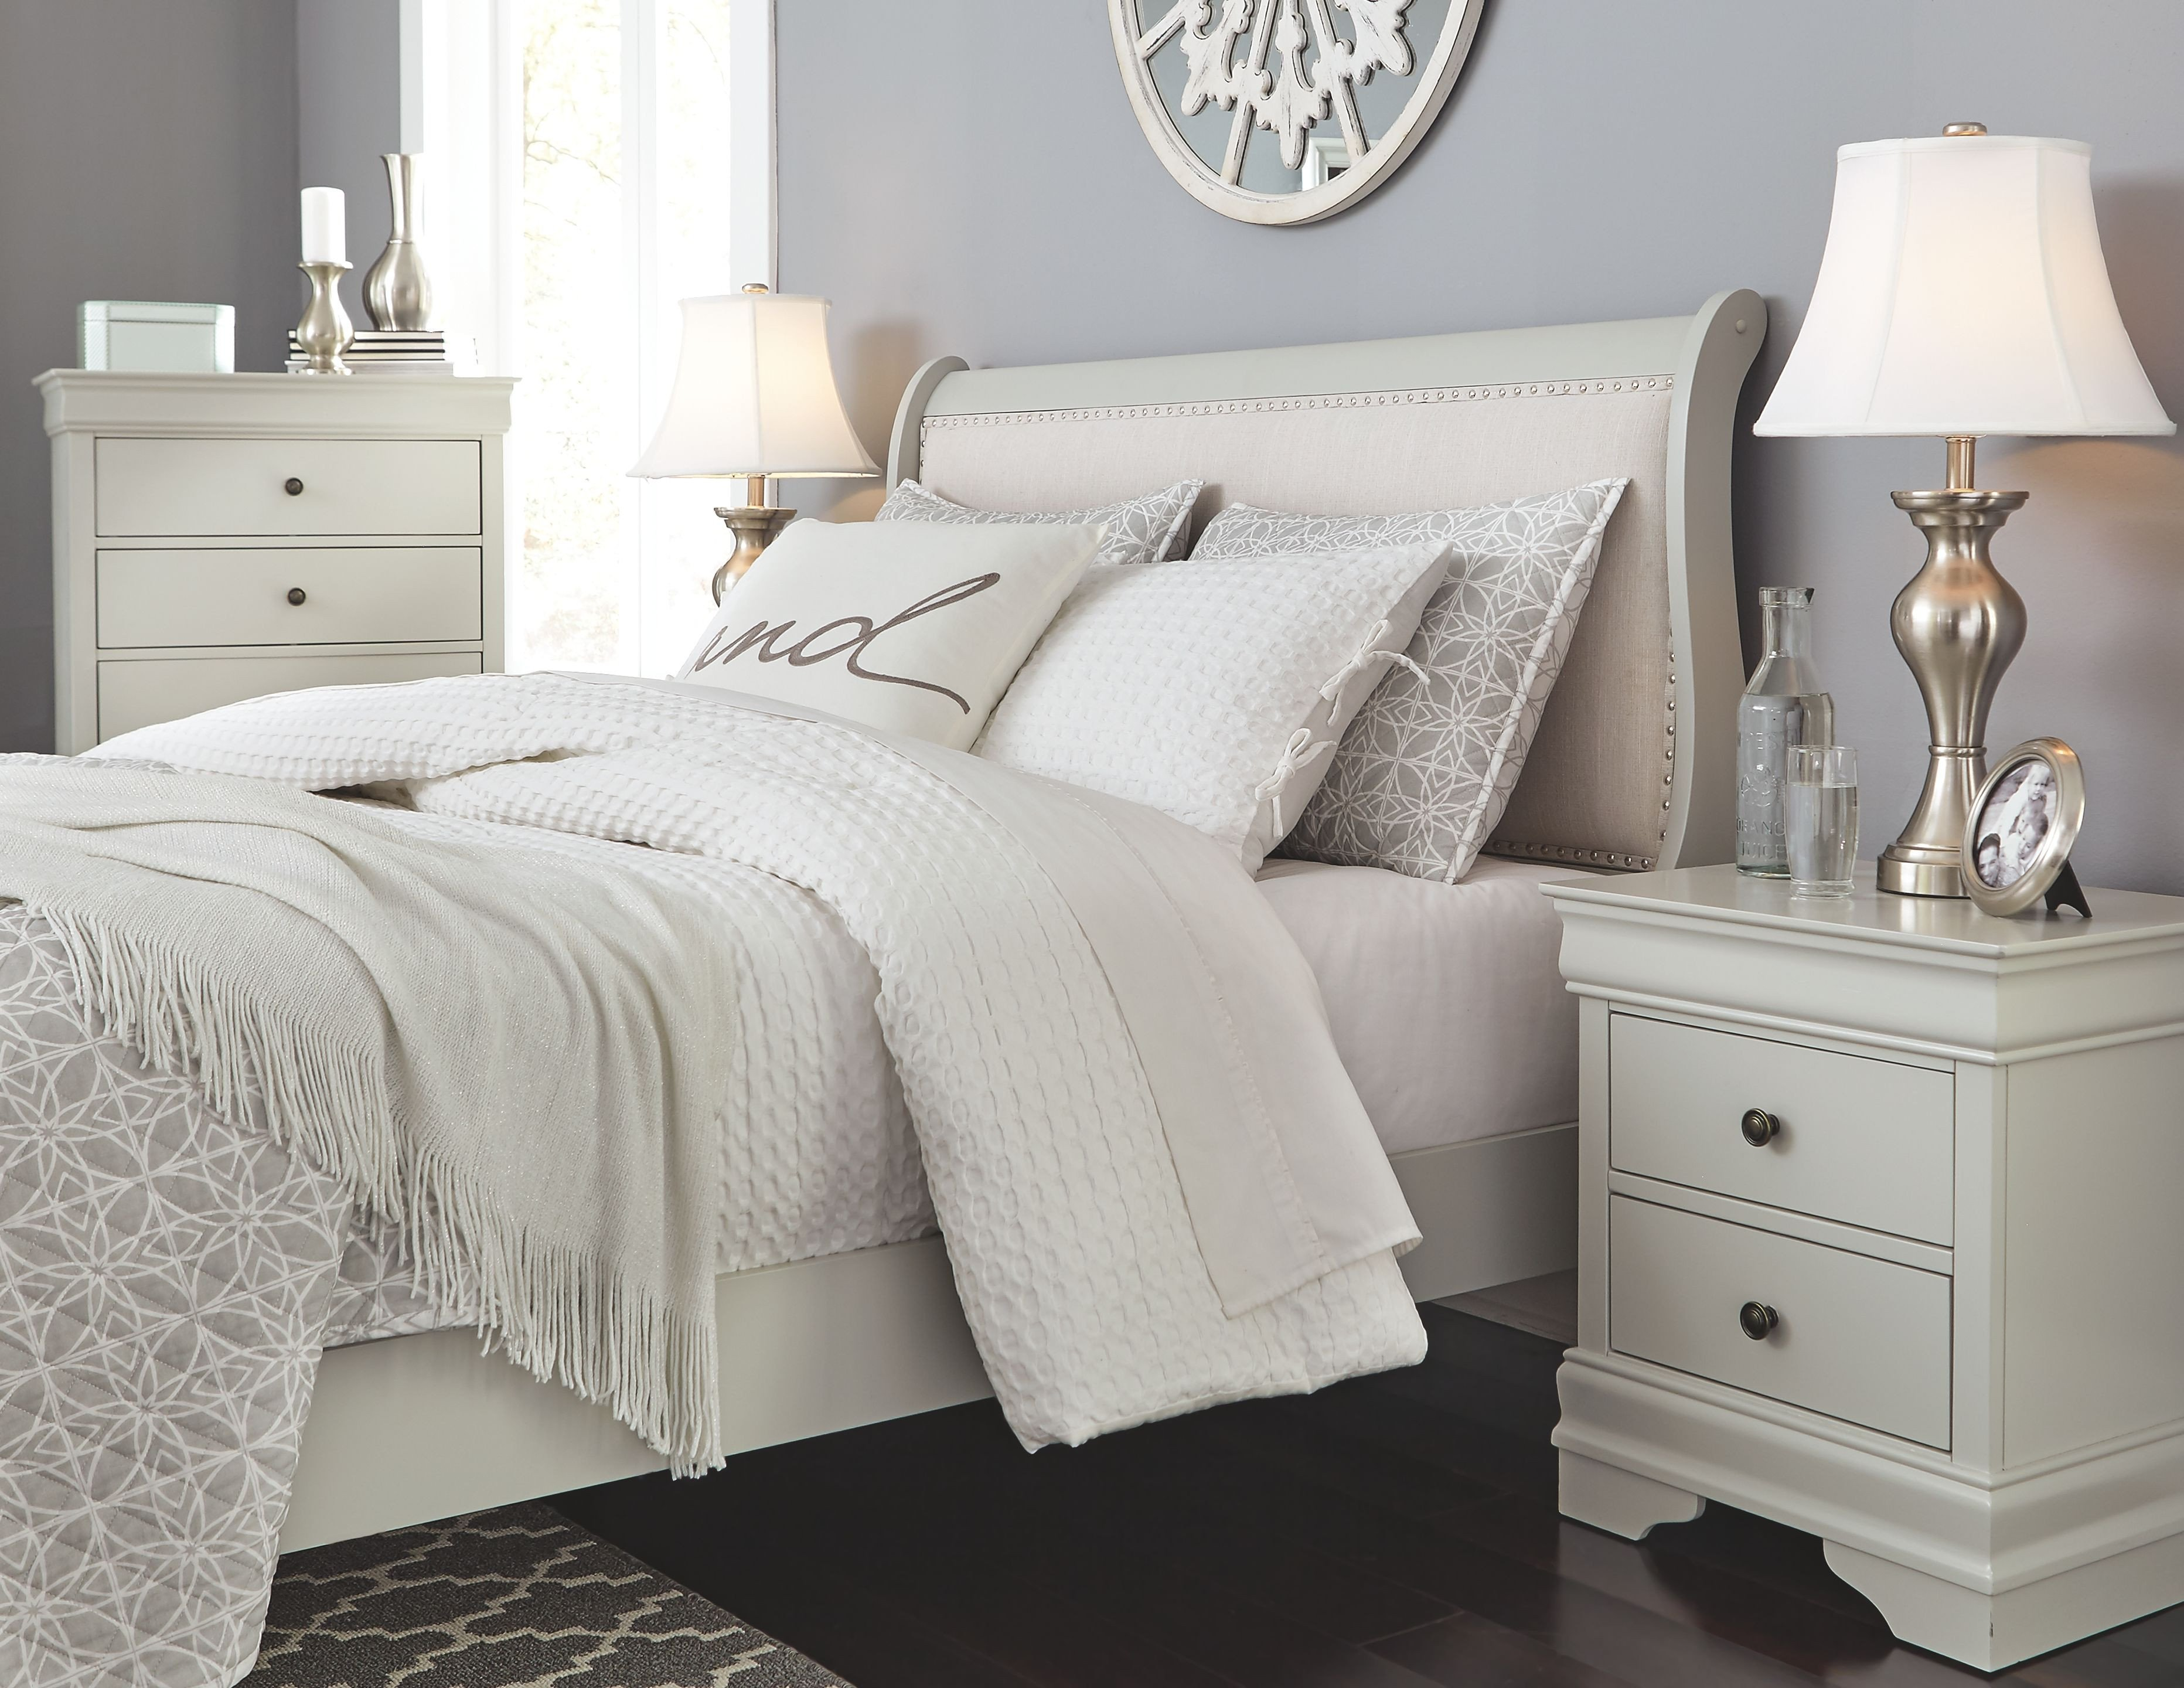 Ashley White Bedroom Set Best Of Jorstad Full Bed with 2 Nightstands Gray